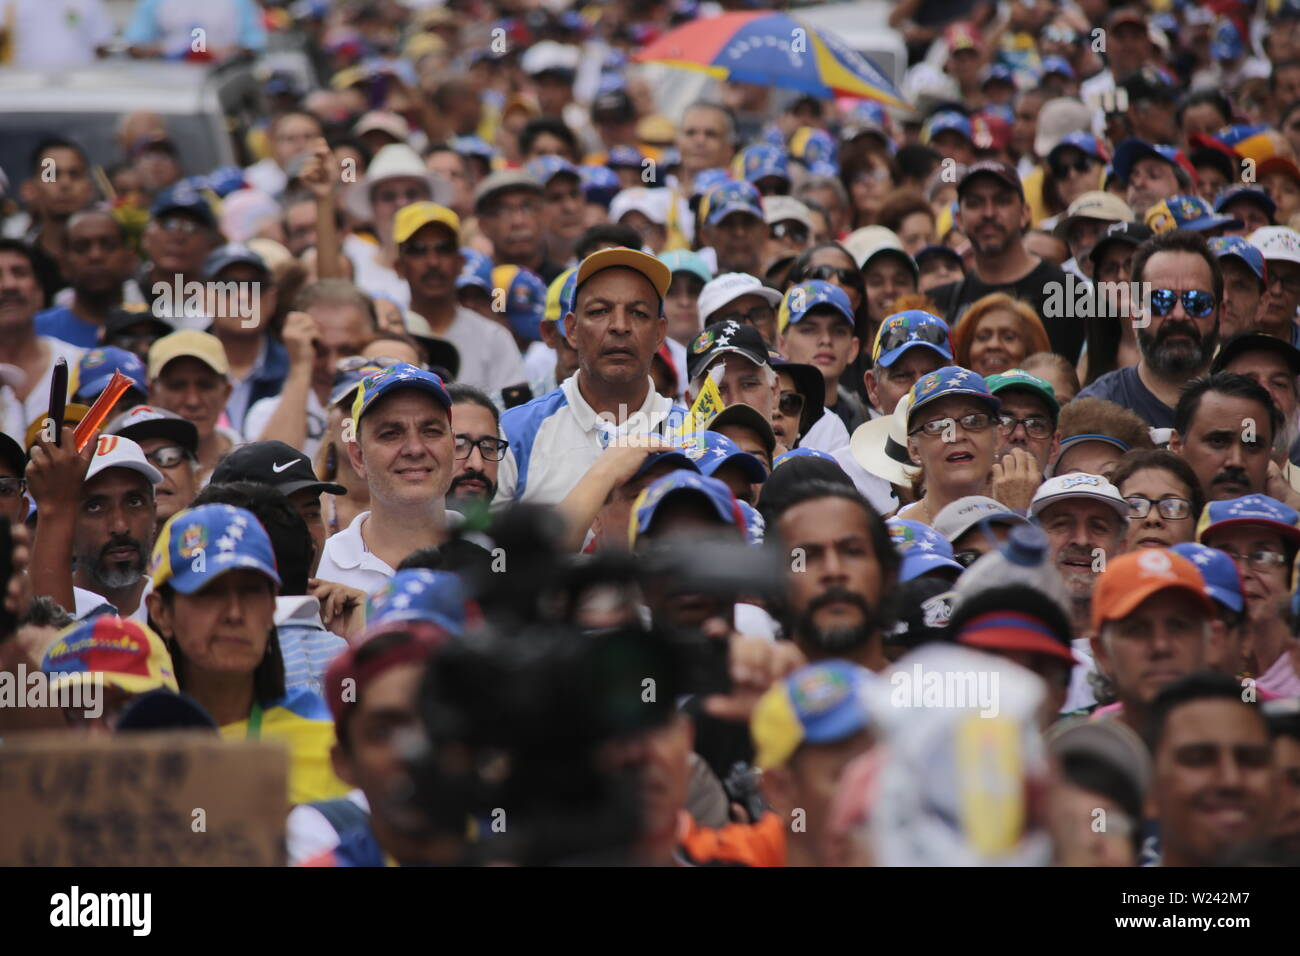 Caracas, Venezuela. 05th July, 2019. Numerous people wearing caps in the colors of the Venezuelan flag take part in a protest against the government of head of state Maduro on the day of independence from Venezuela. The opposition leader and self-appointed interim president Guaido had called on civil society to protest against the government of head of state Maduro. Venezuela commemorates on July 5 the independence of Spain in 1811. Credit: Rafael Hernandez/dpa/Alamy Live News - Stock Image